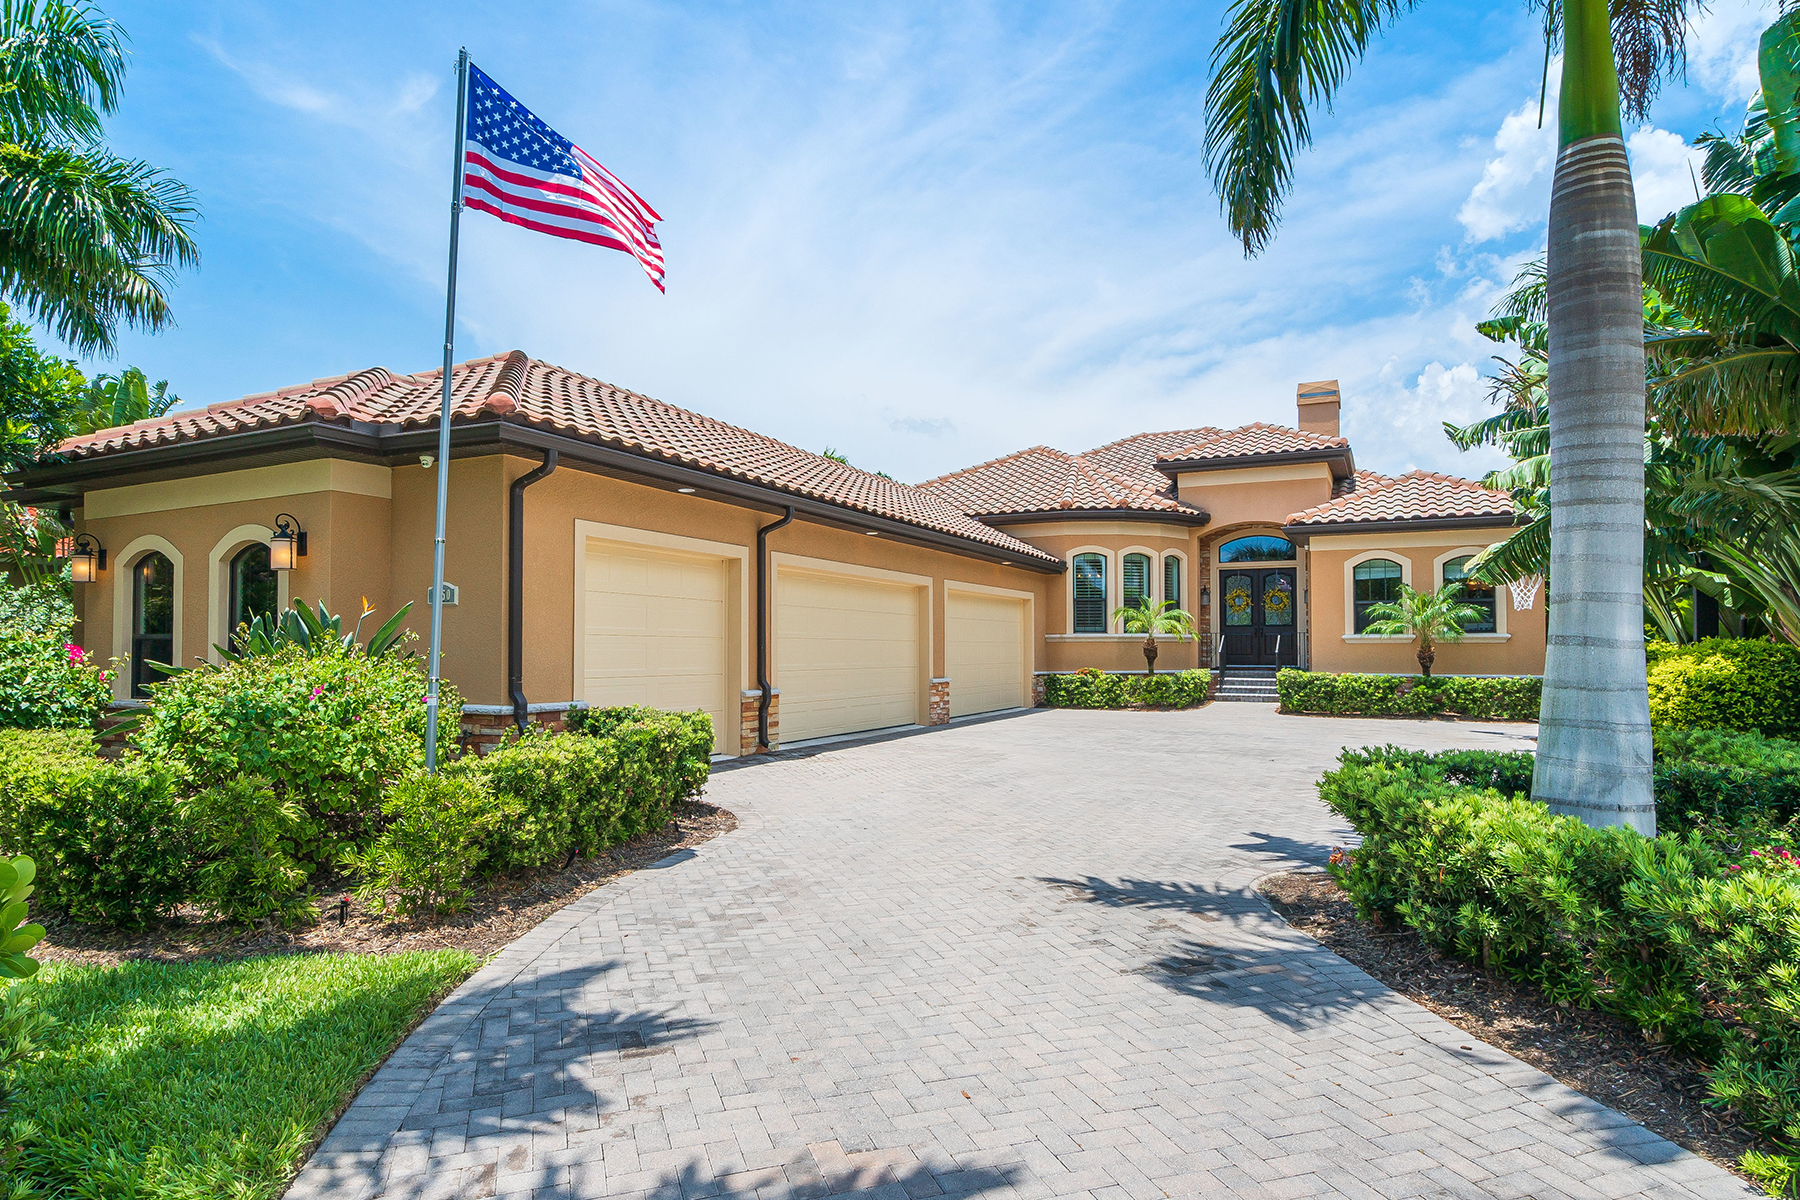 Single Family Homes for Sale at CASEY KEY ESTATES 1050 Gulf Winds Way Nokomis, Florida 34275 United States